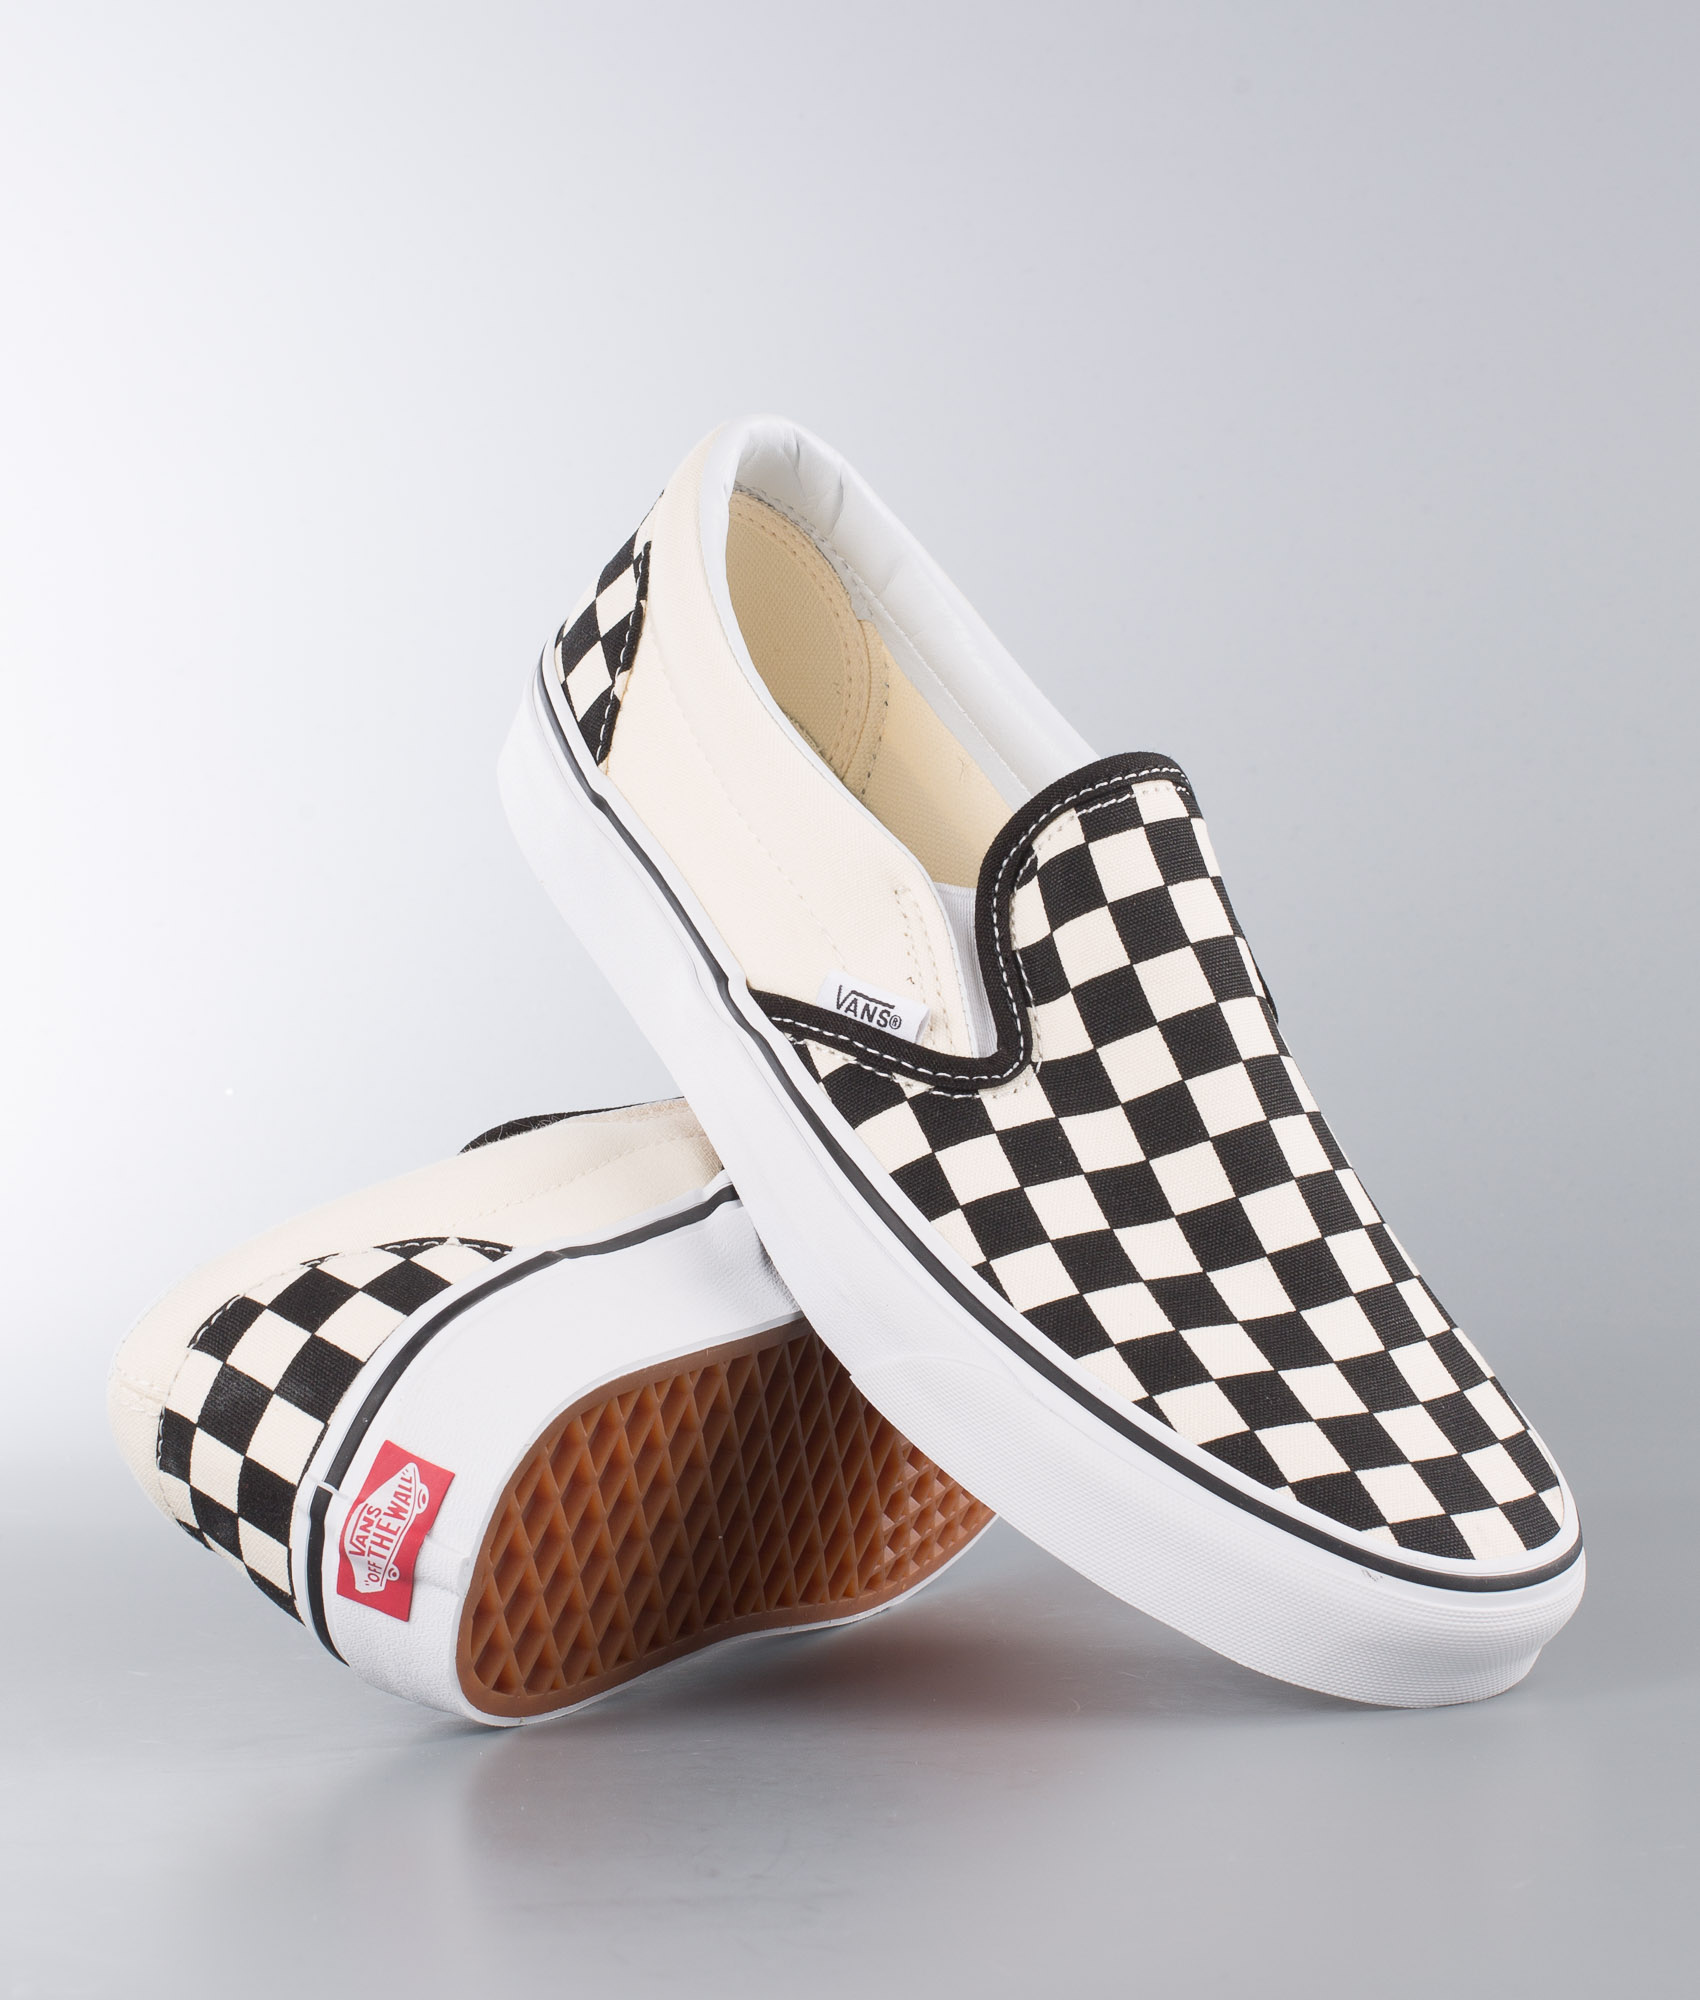 vans splip on